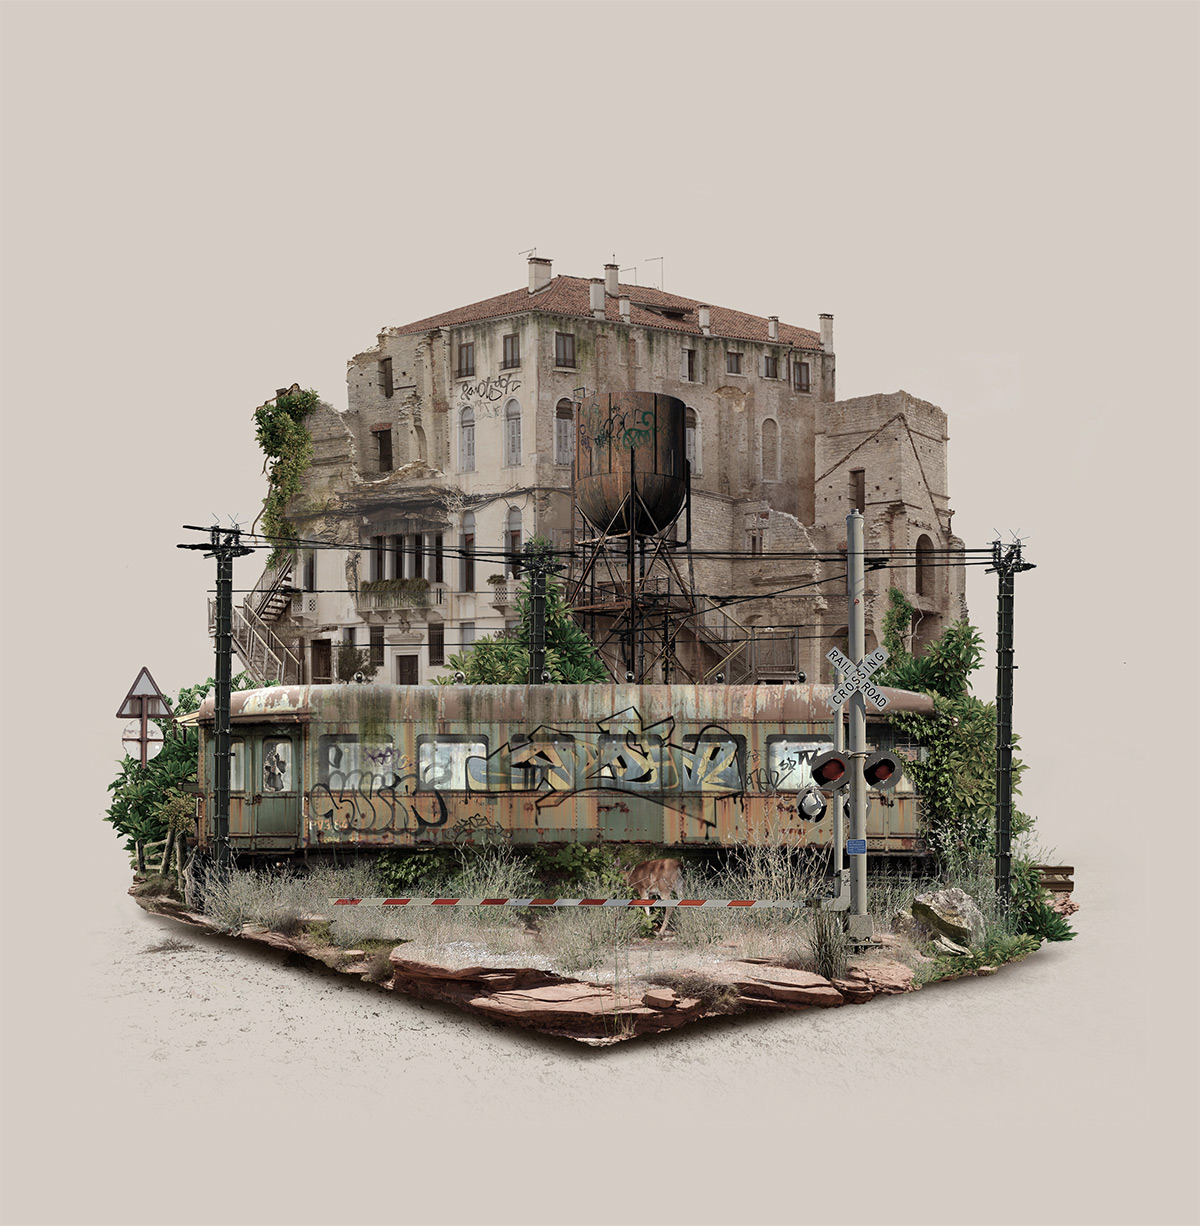 Fantastic Digitally-Manipulated Floating Islands (7 pics)